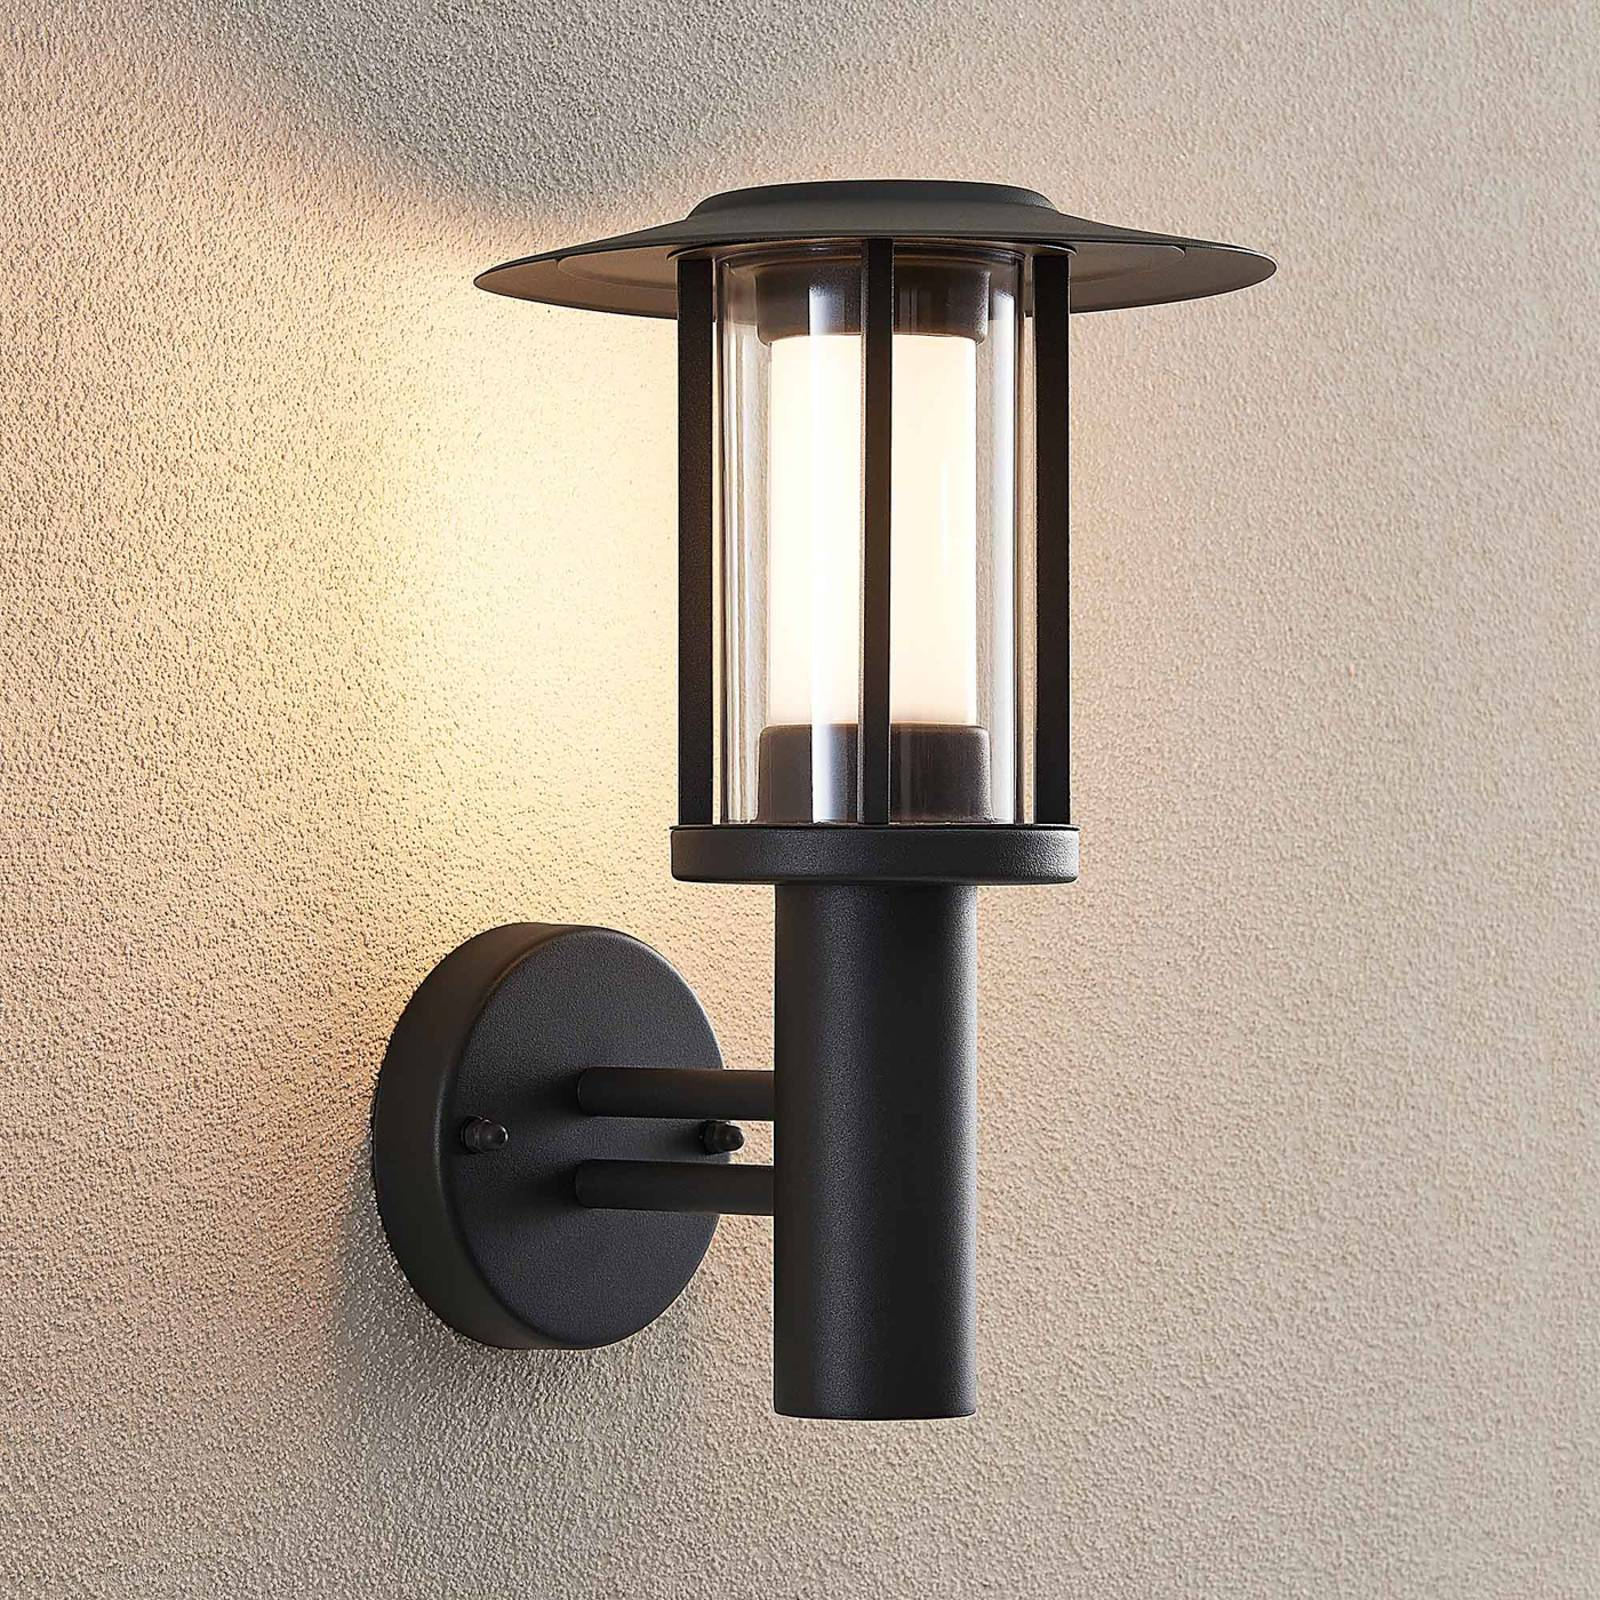 LED outdoor wall lamp Gregory grey from Lindby